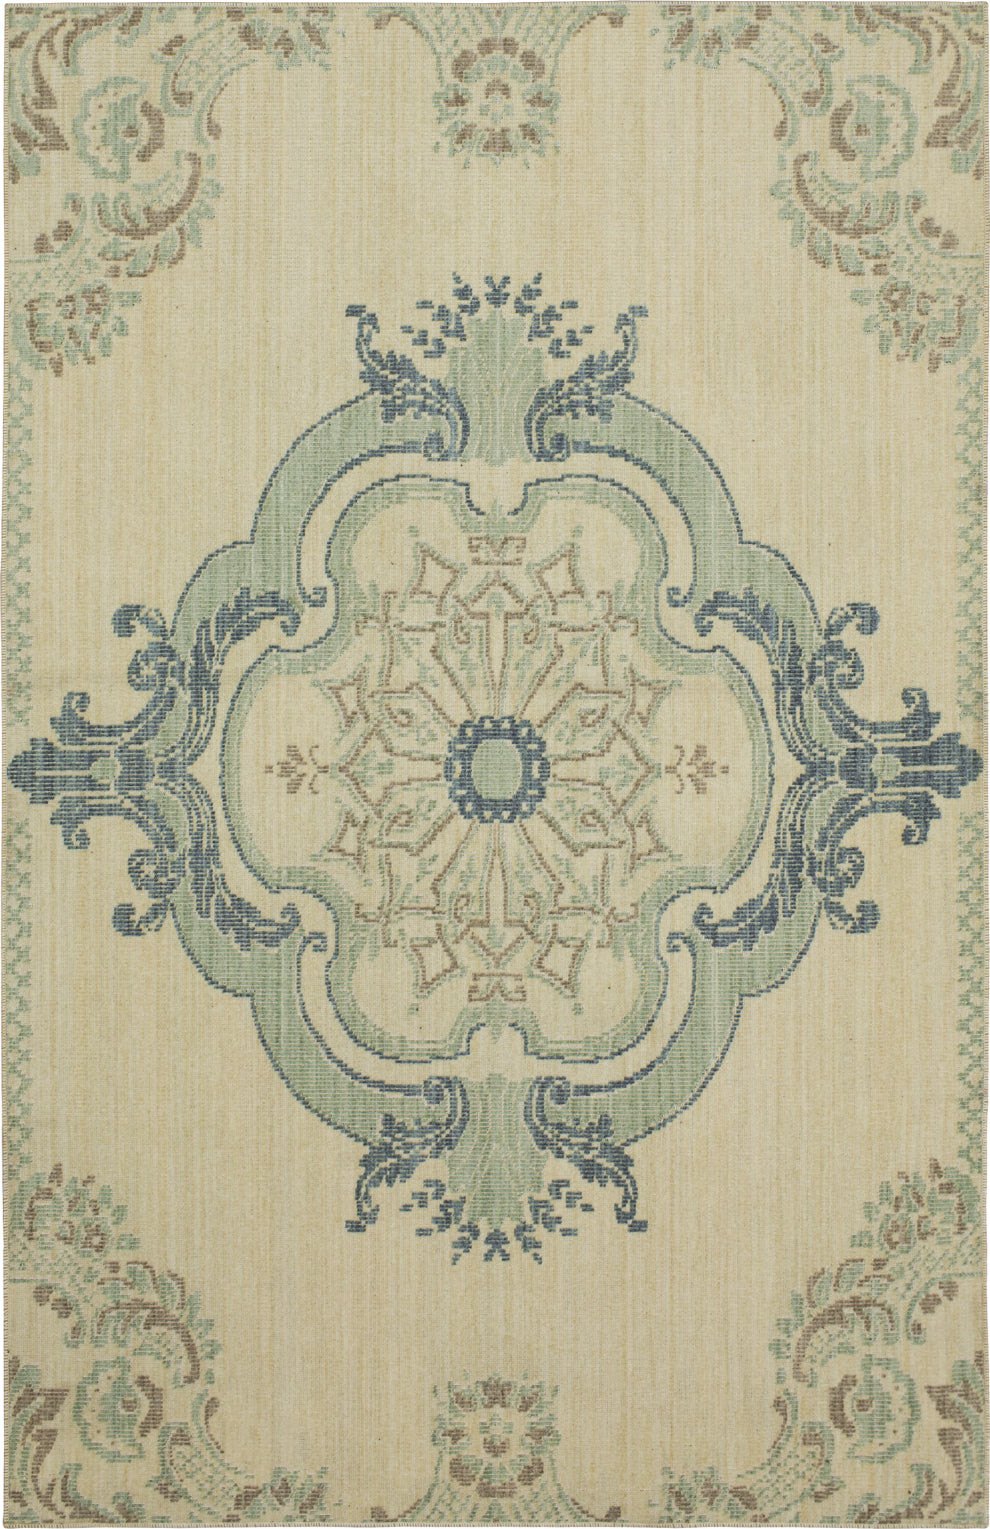 Karastan Vintage Tapis Crown Jewel Aqua Beige Area Rug by Patina Vie main image